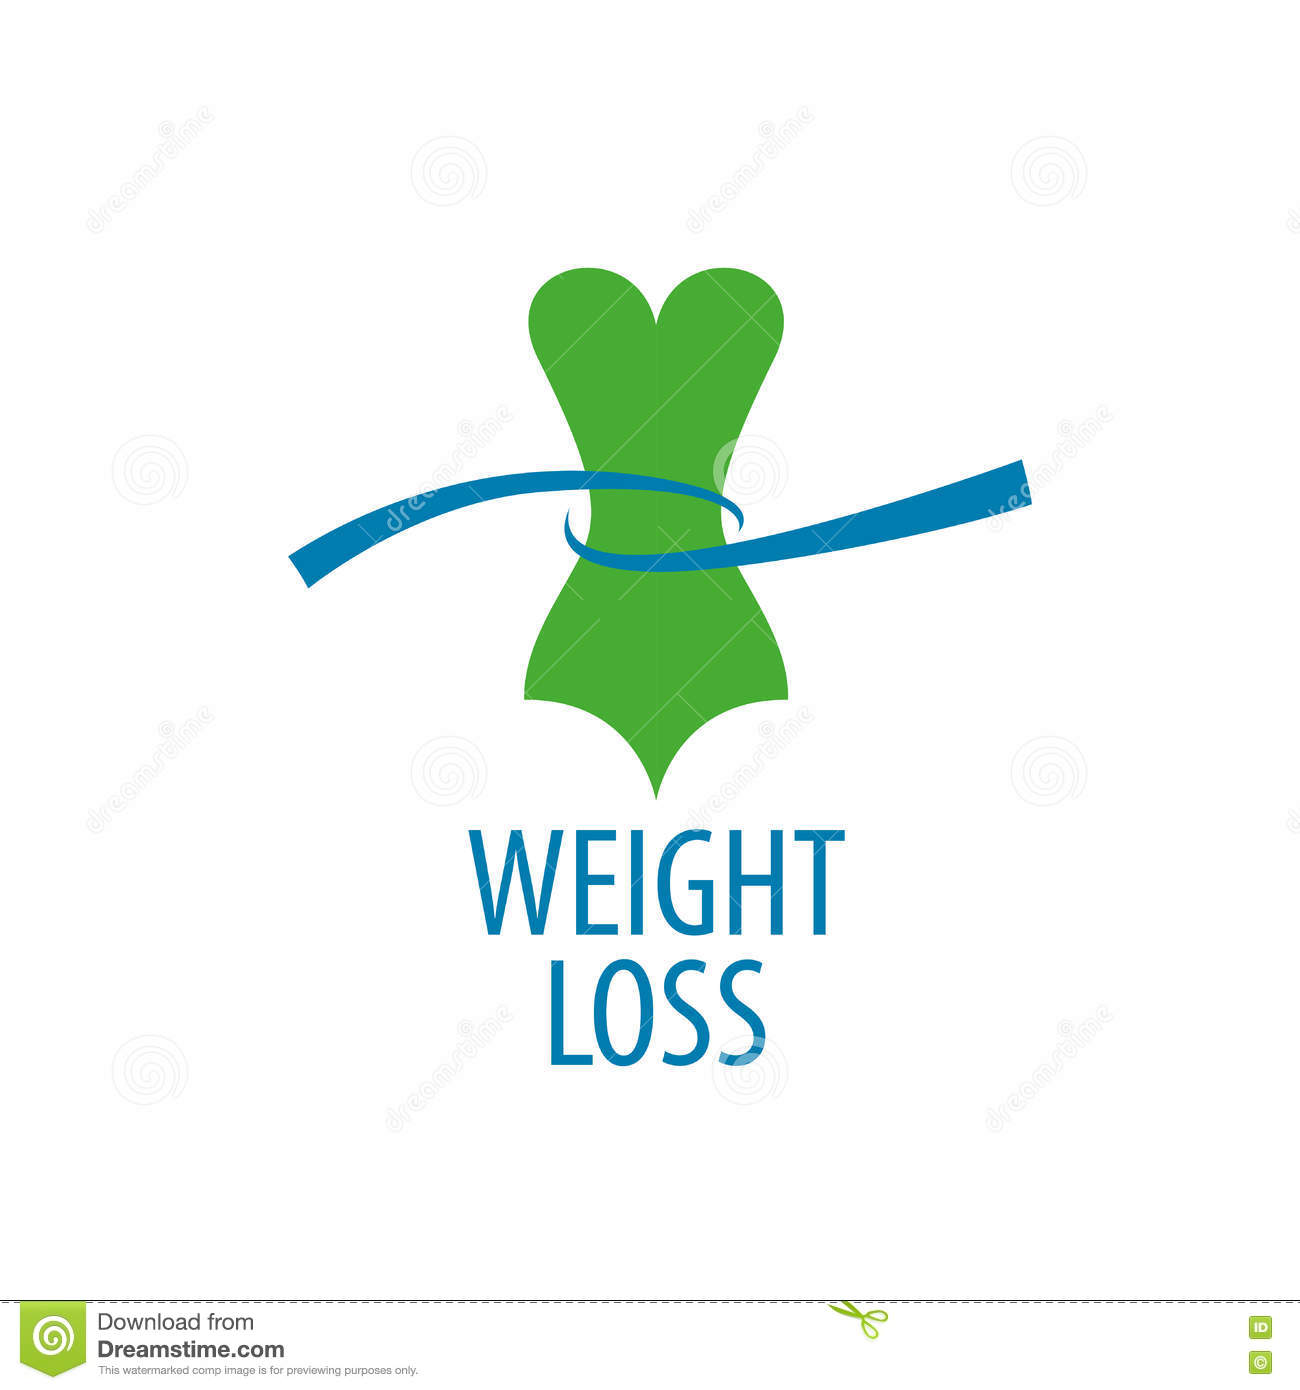 Childrens hospital boston weight loss program